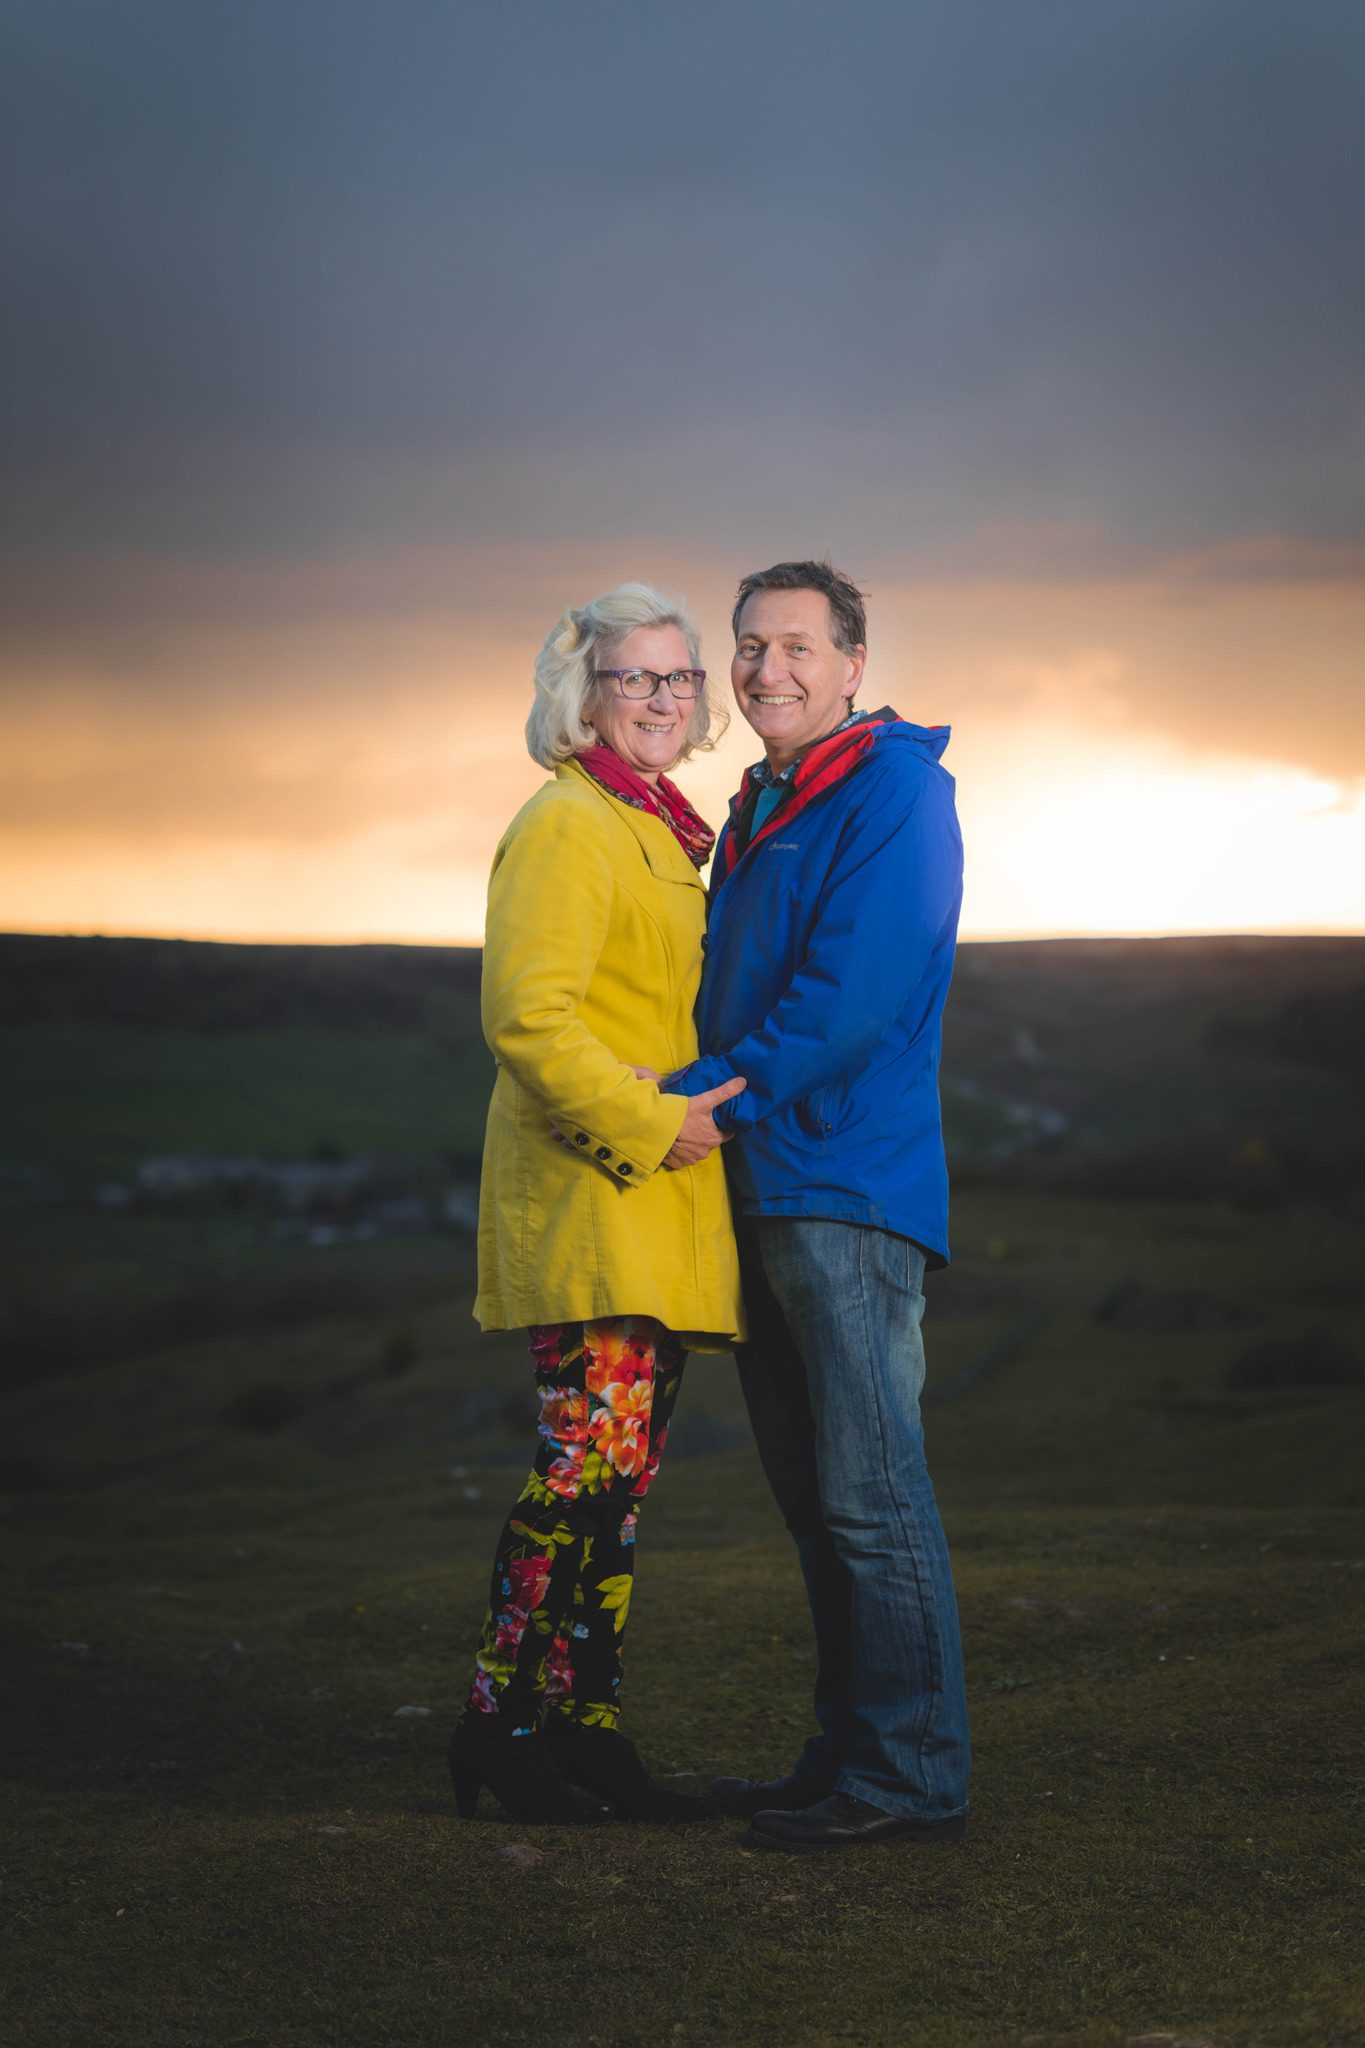 Buxton Portrait Photographer - Debbie and J Sunset